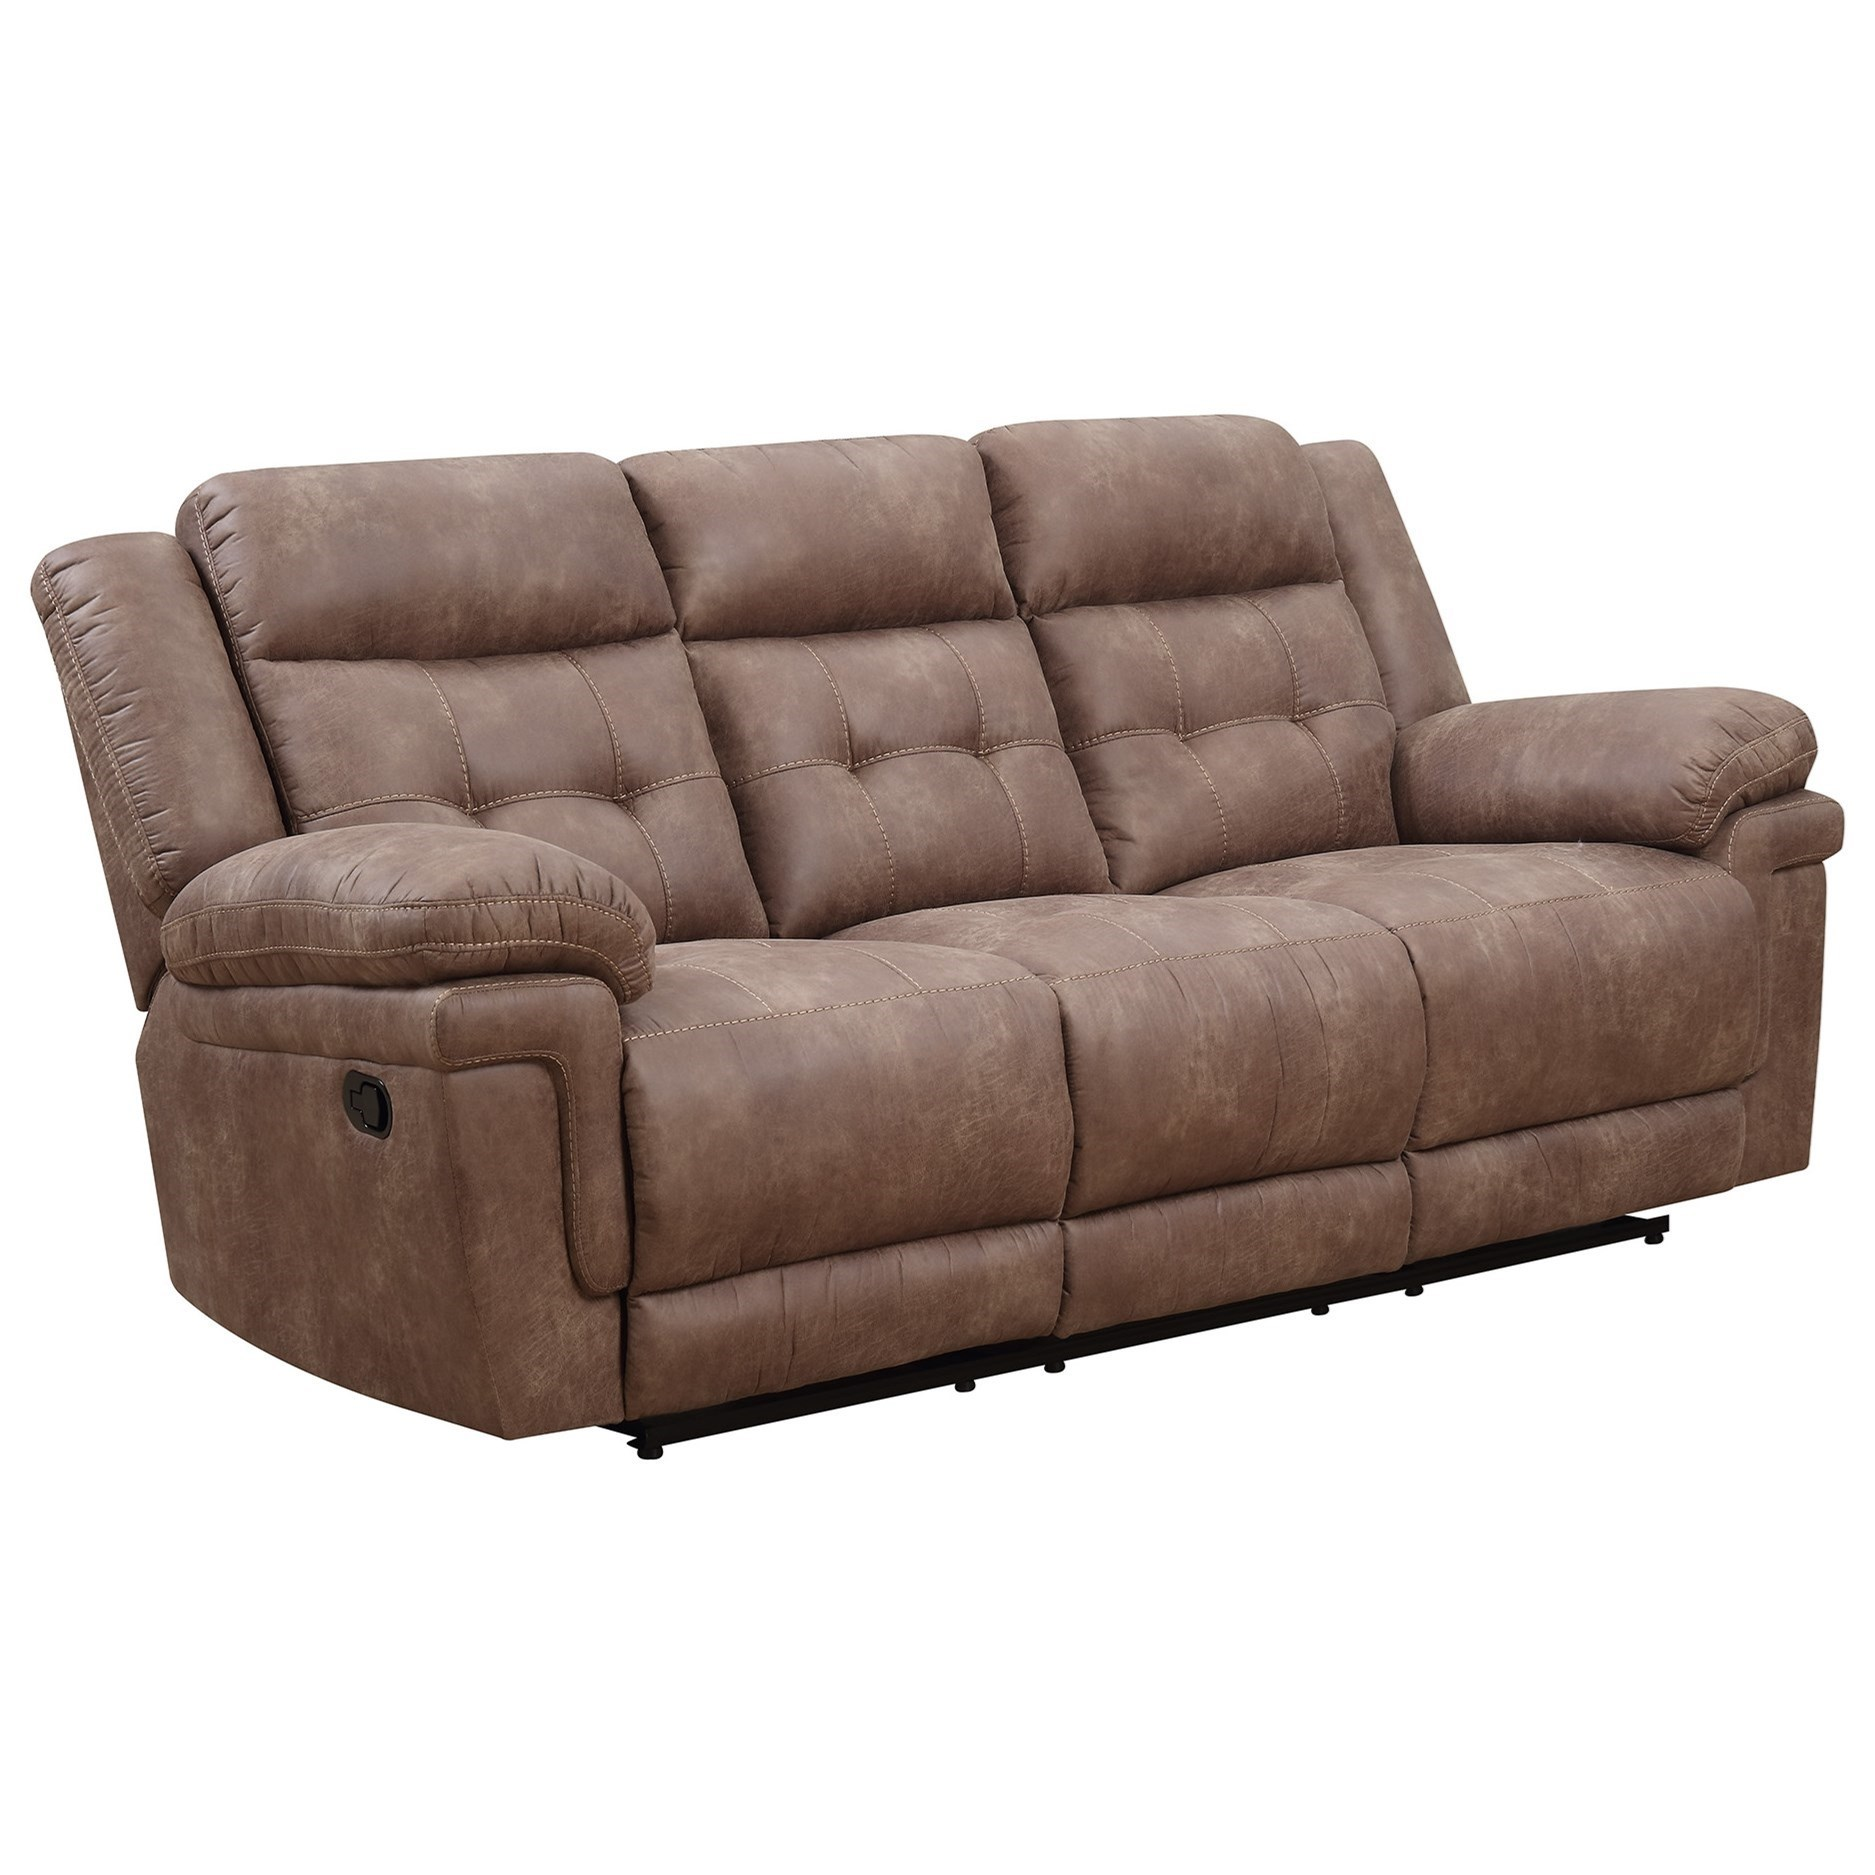 Anastasia Reclining Sofa by Steve Silver at Standard Furniture